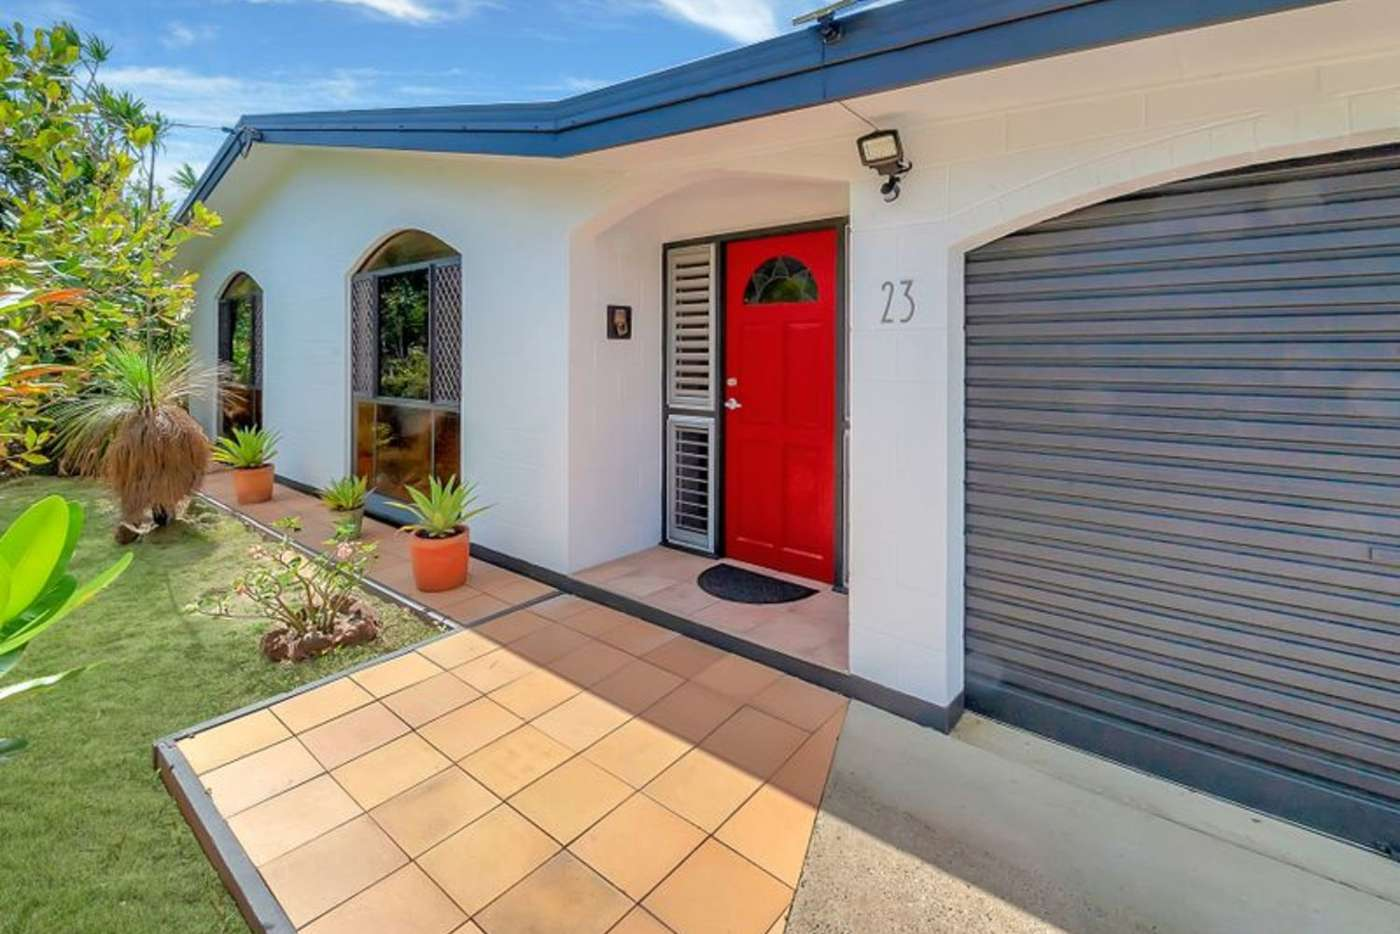 Seventh view of Homely house listing, 23 Centaur Street, Trinity Park QLD 4879